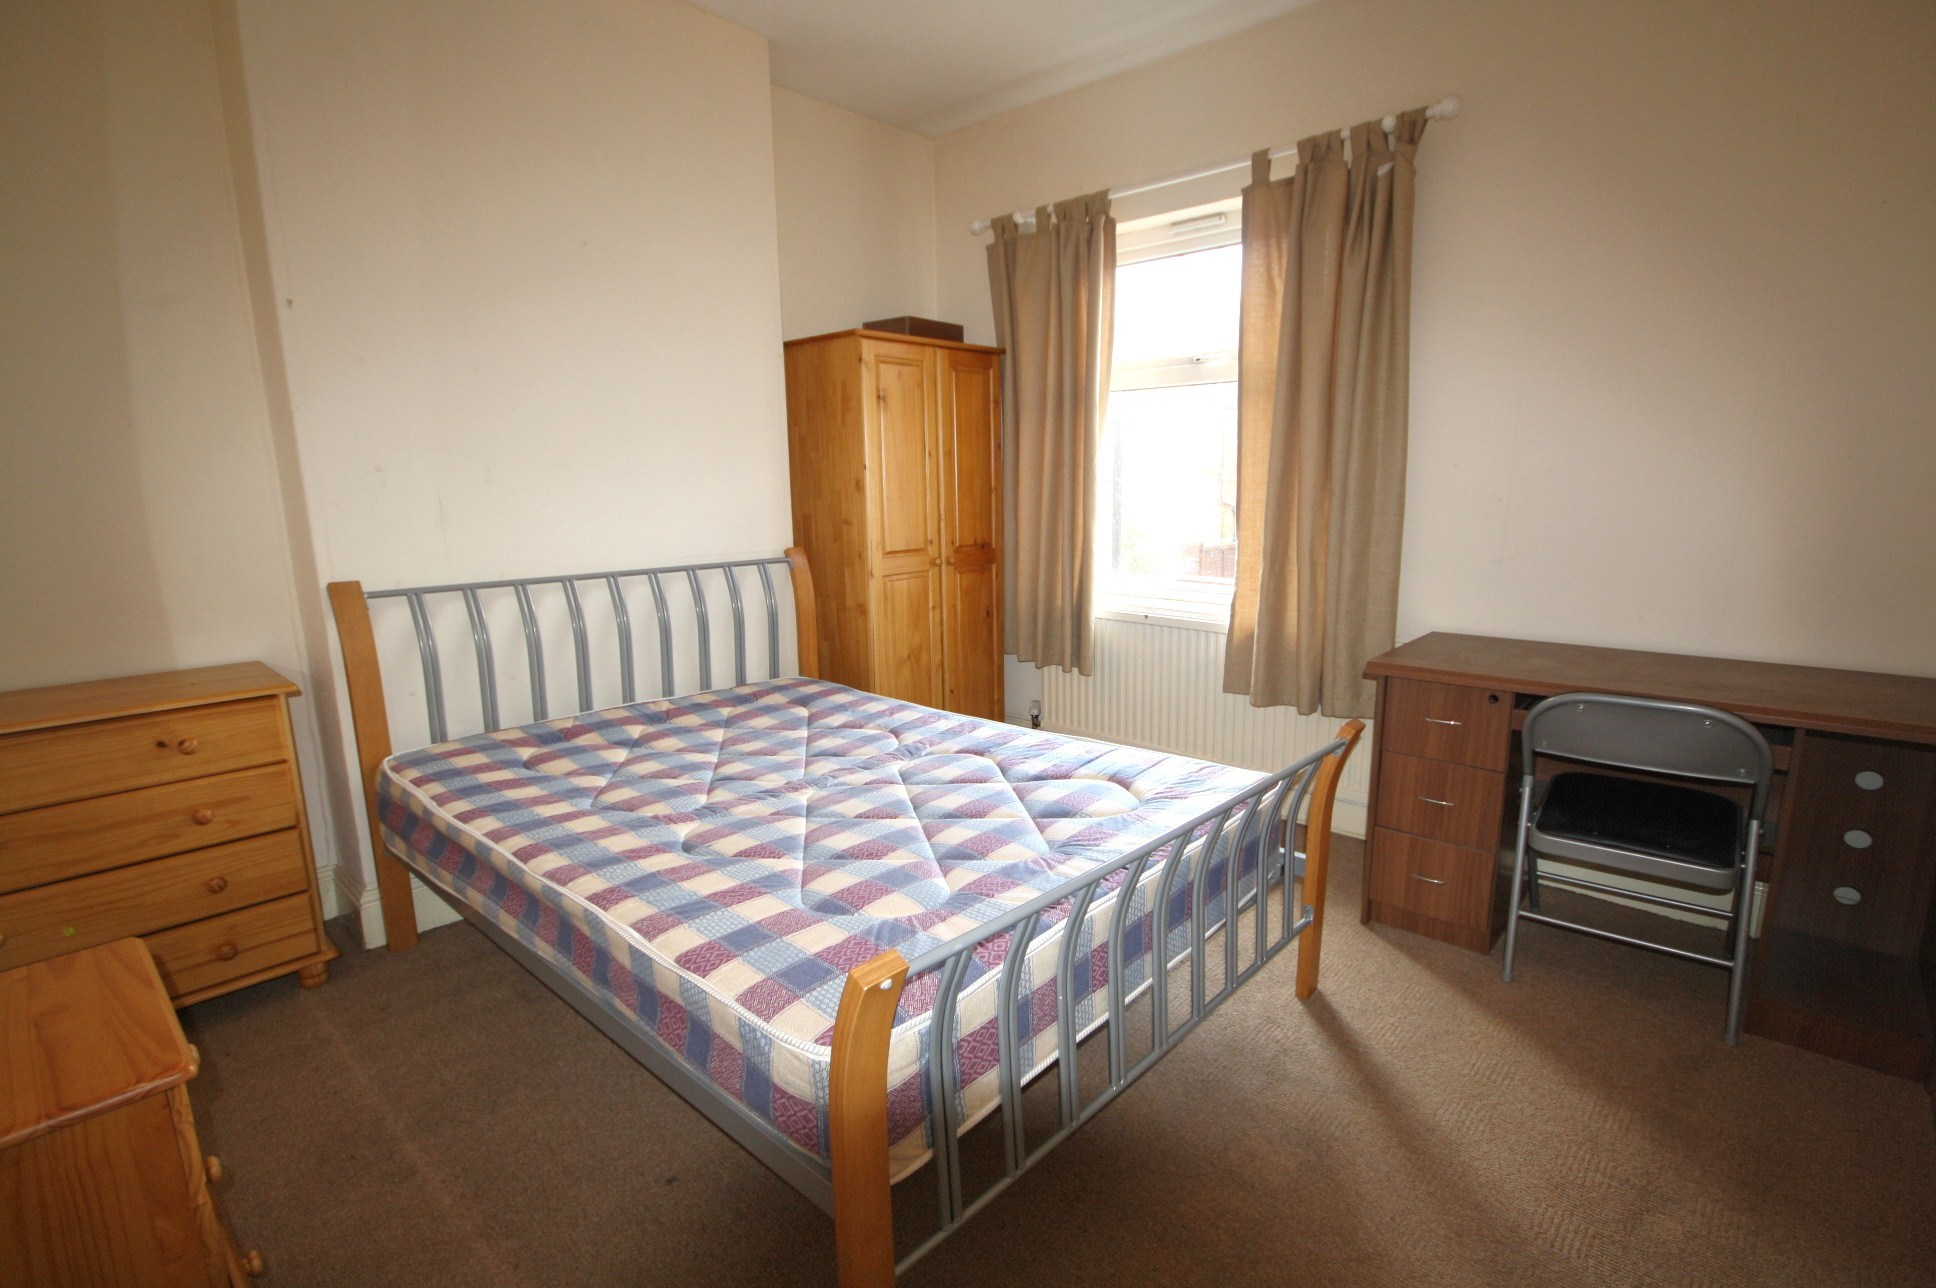 Rent A Student Room Leicester